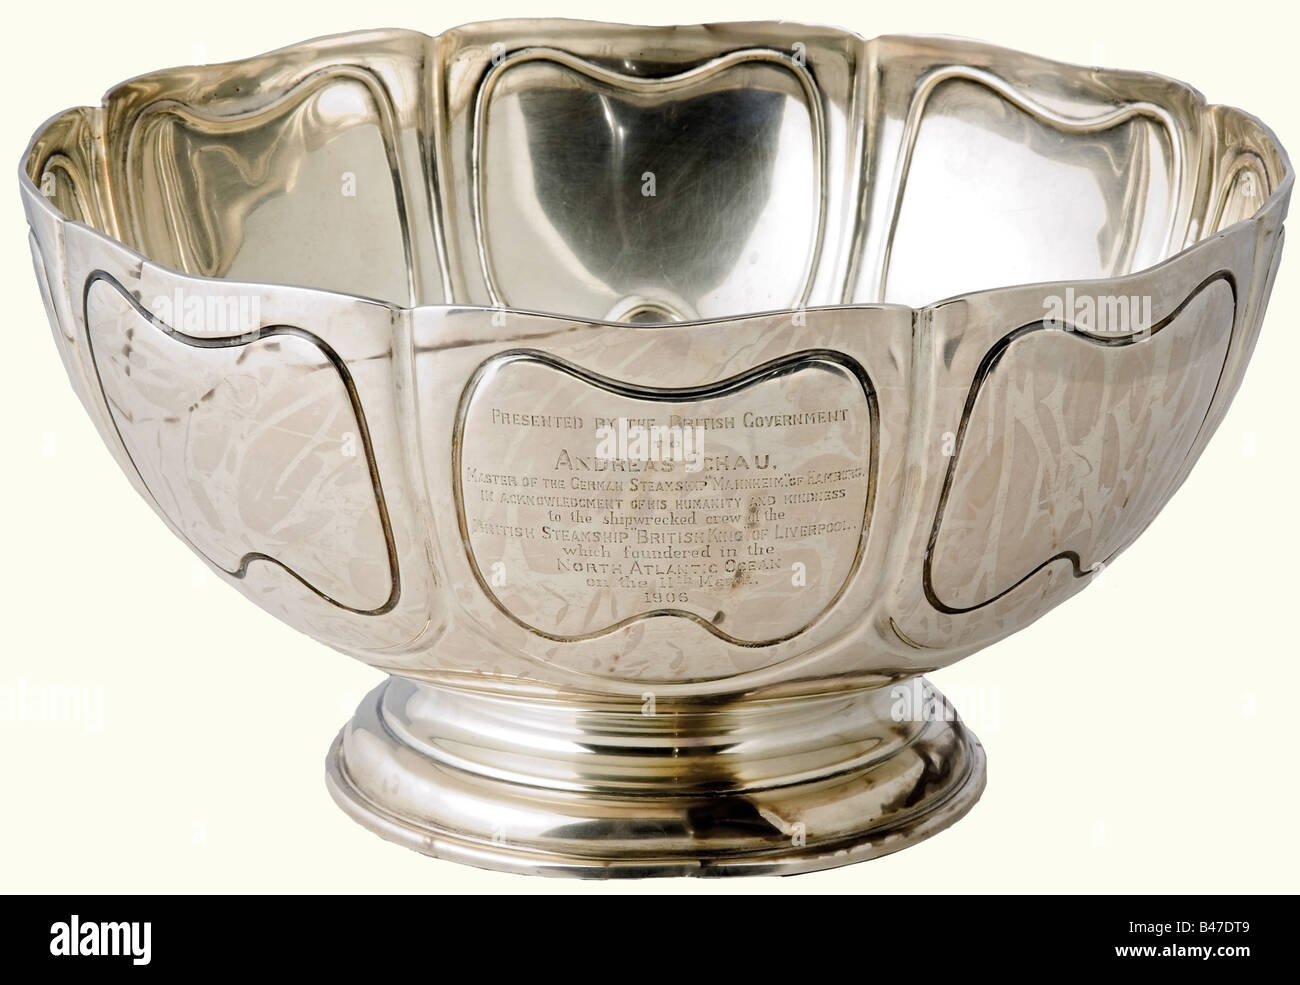 Andreas Schau - a large silver dish., A Present of the British government for the rescue of the crew of the sunken Stock Photo